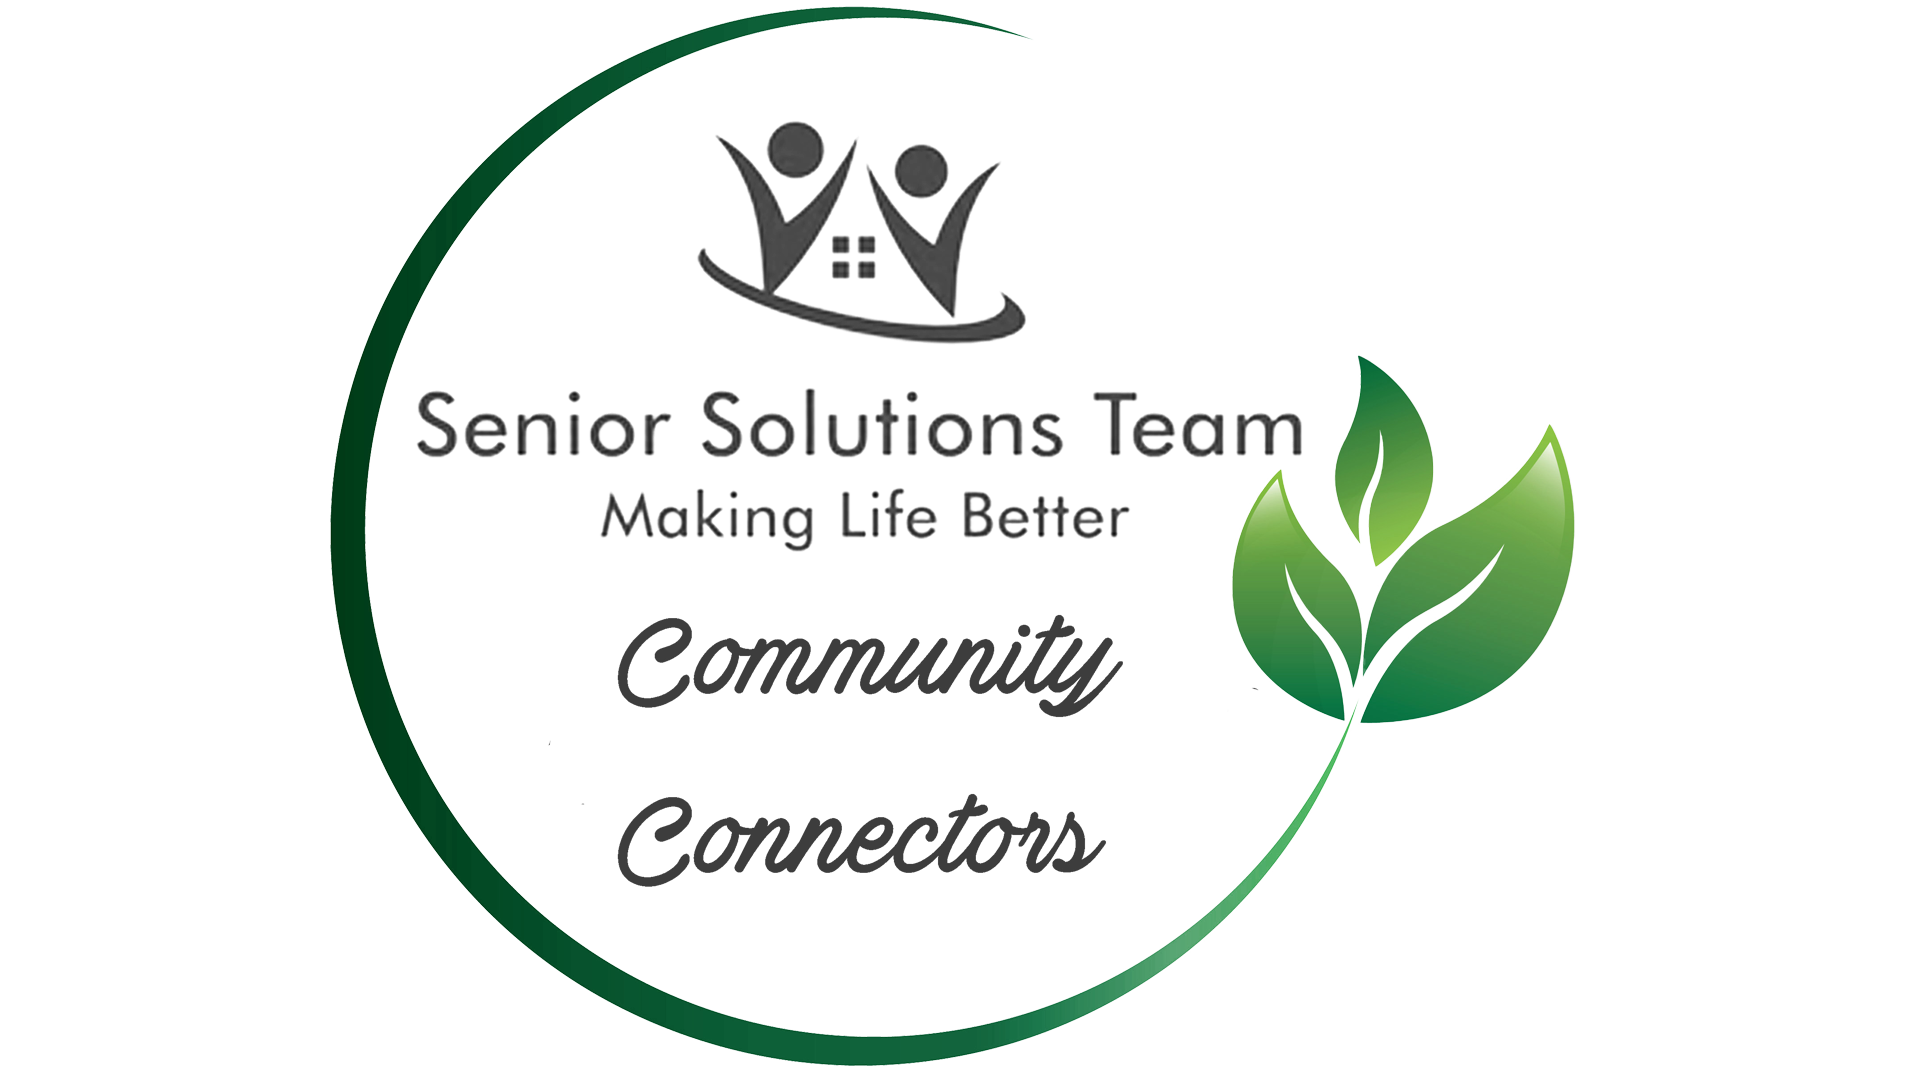 st albert Senior Solutions Team CC PNG